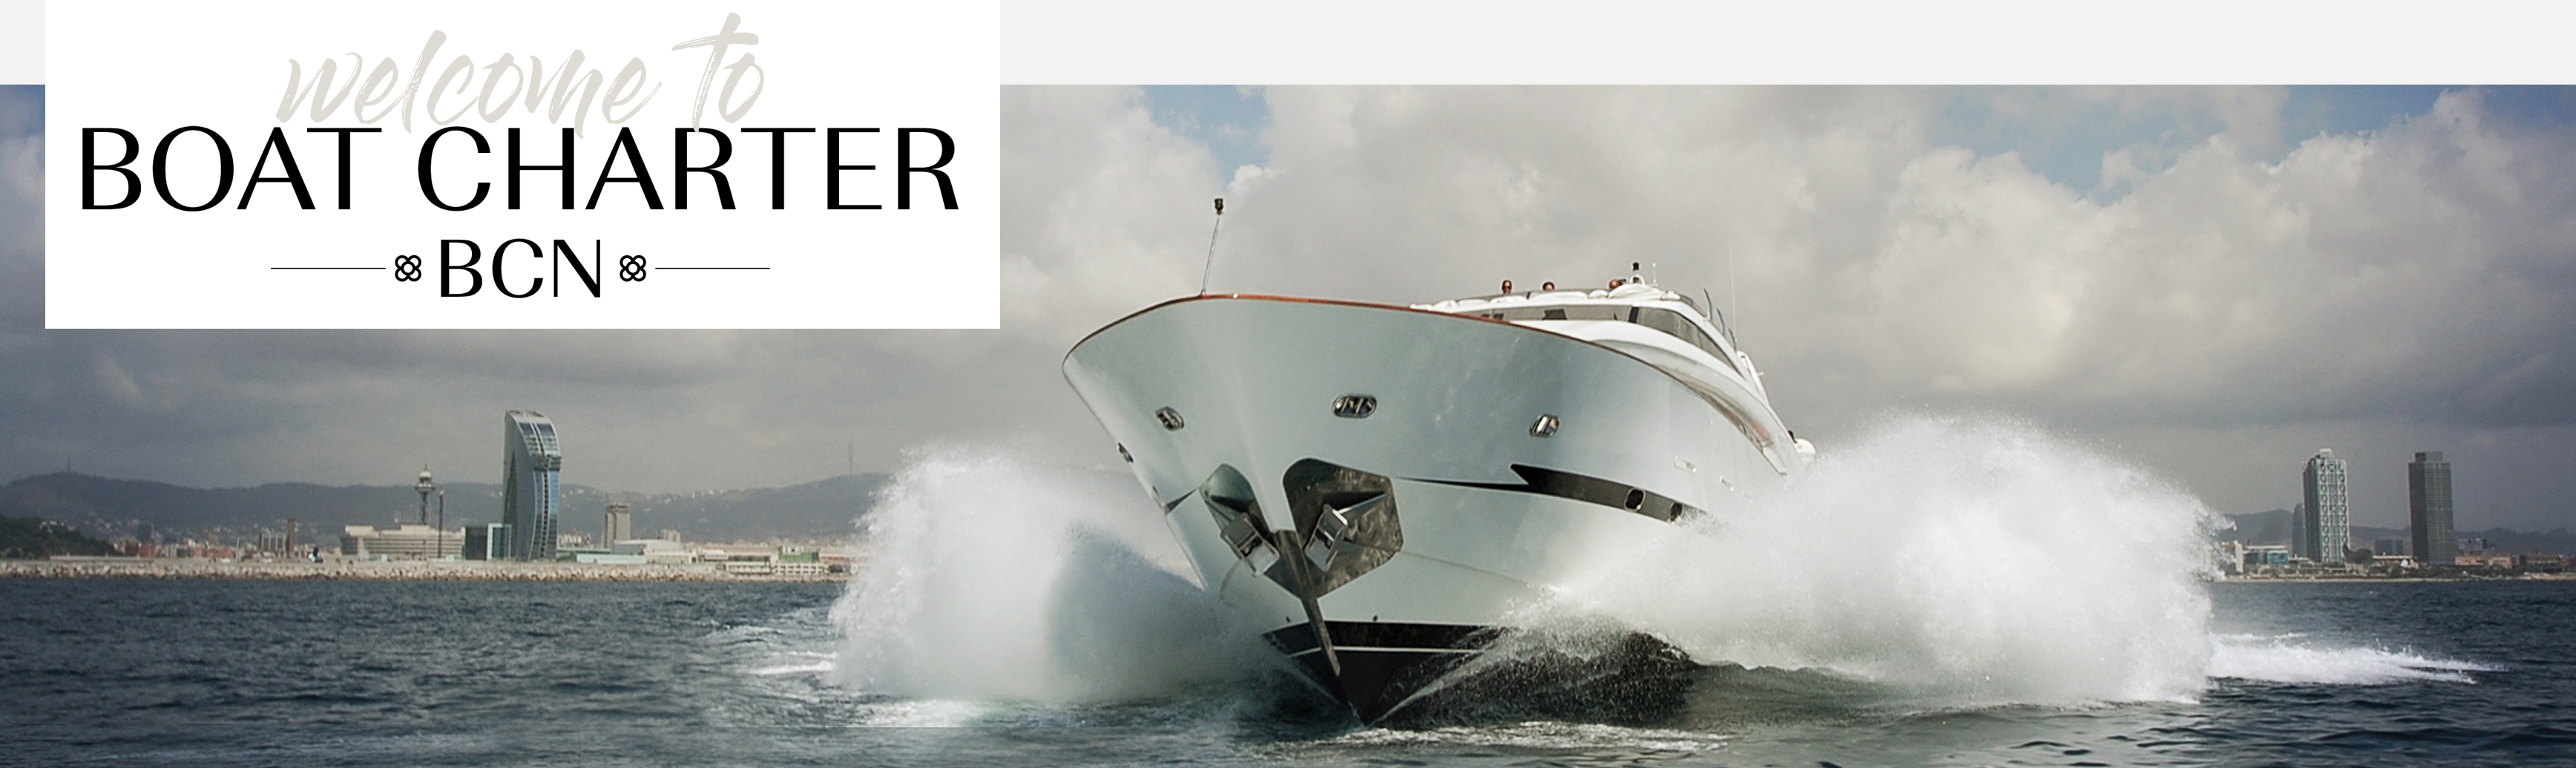 Welcome to Boat Charter BCN